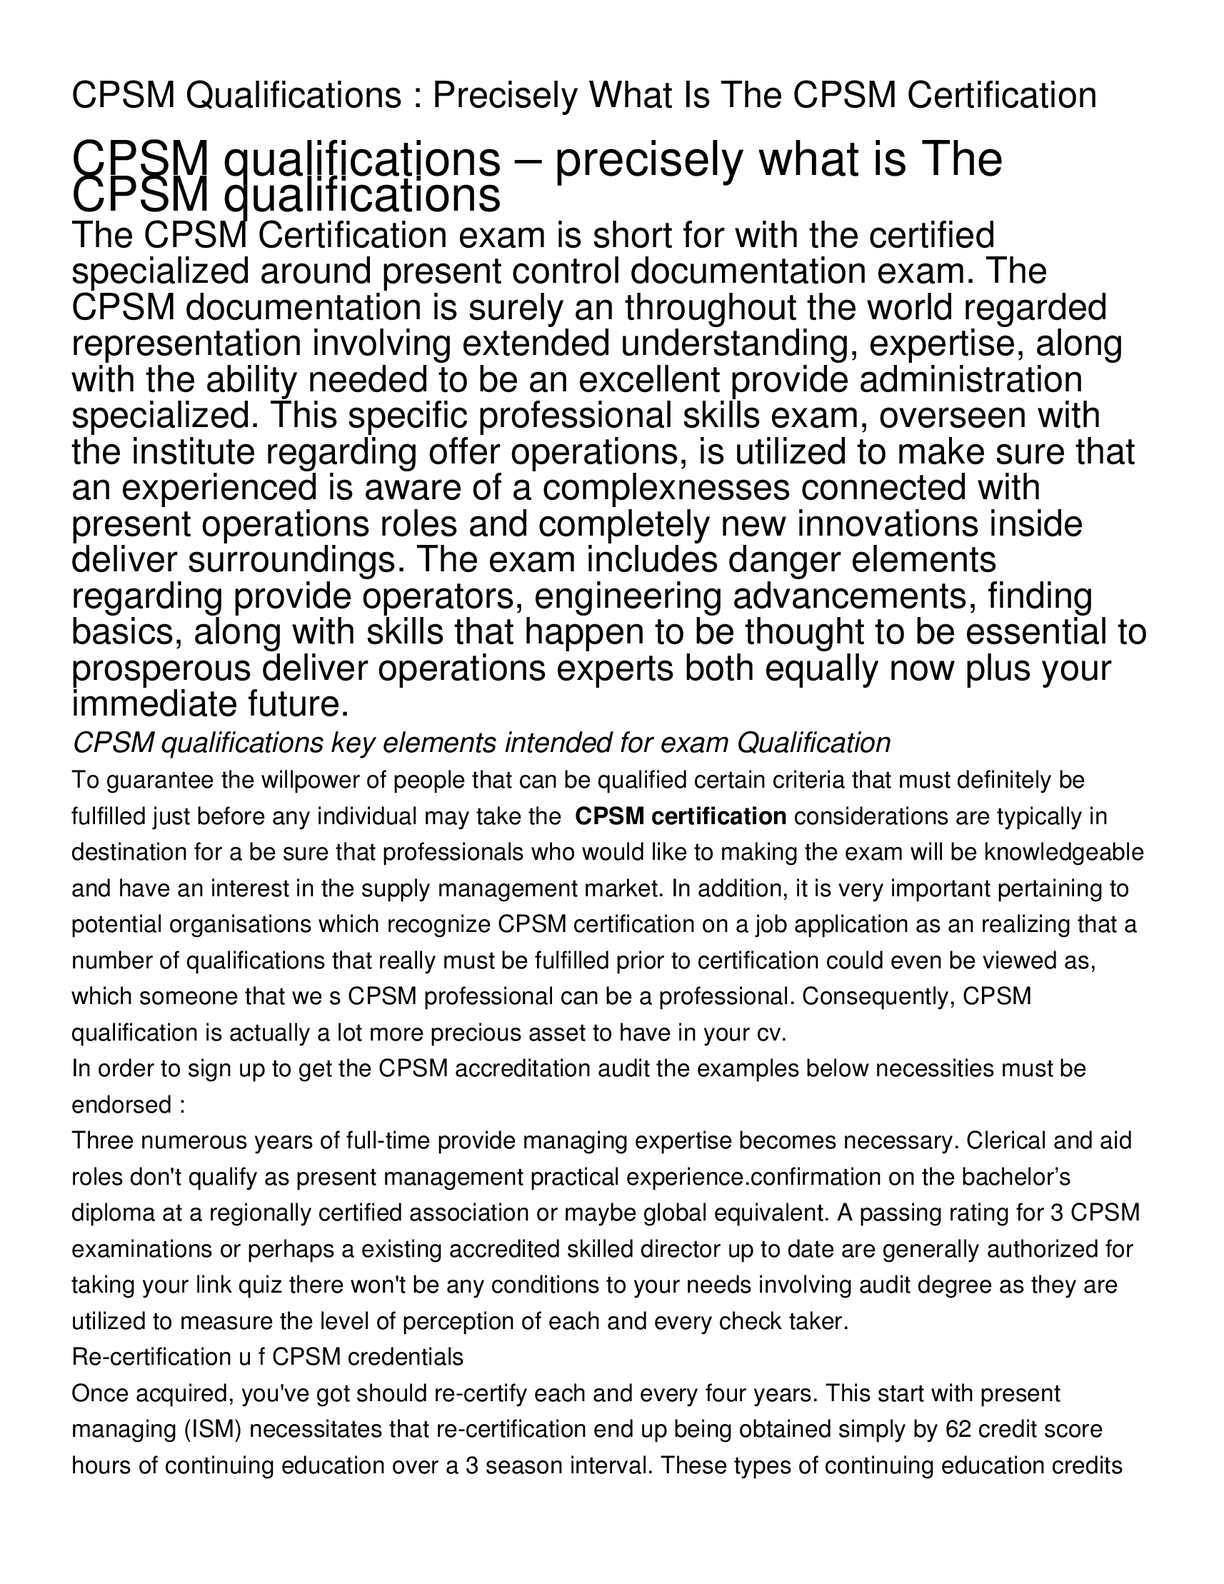 Calamo Cpsm Qualifications Precisely What Is The Cpsm